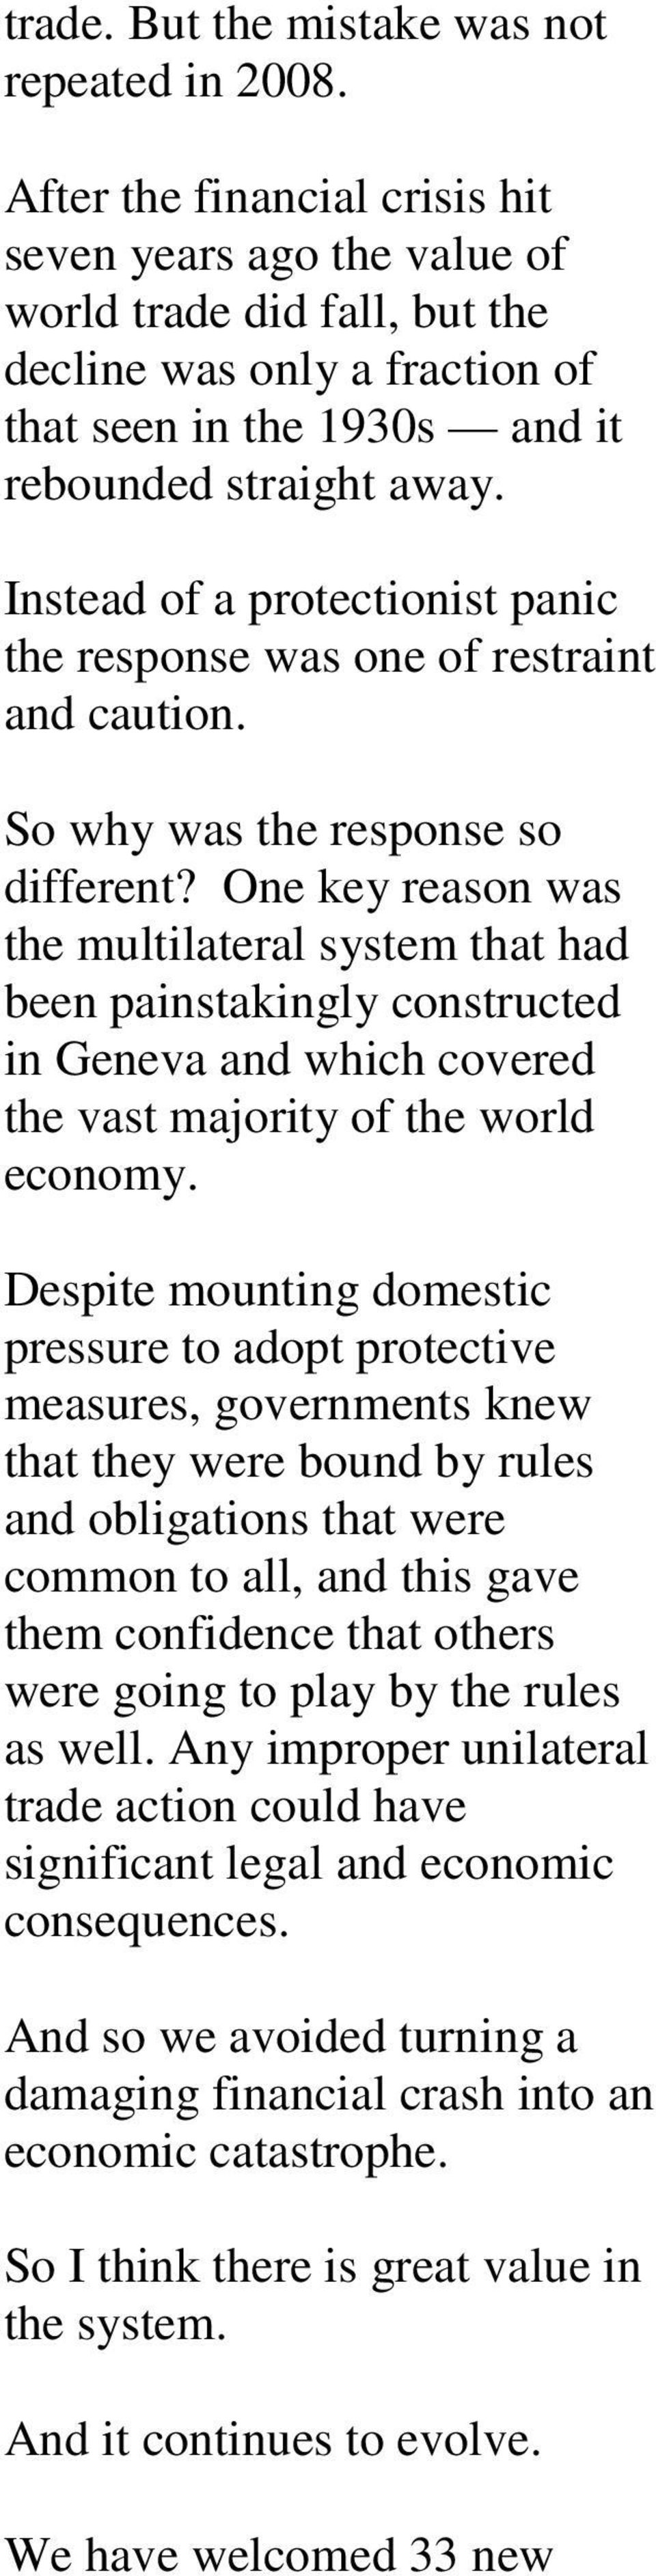 Instead of a protectionist panic the response was one of restraint and caution. So why was the response so different?